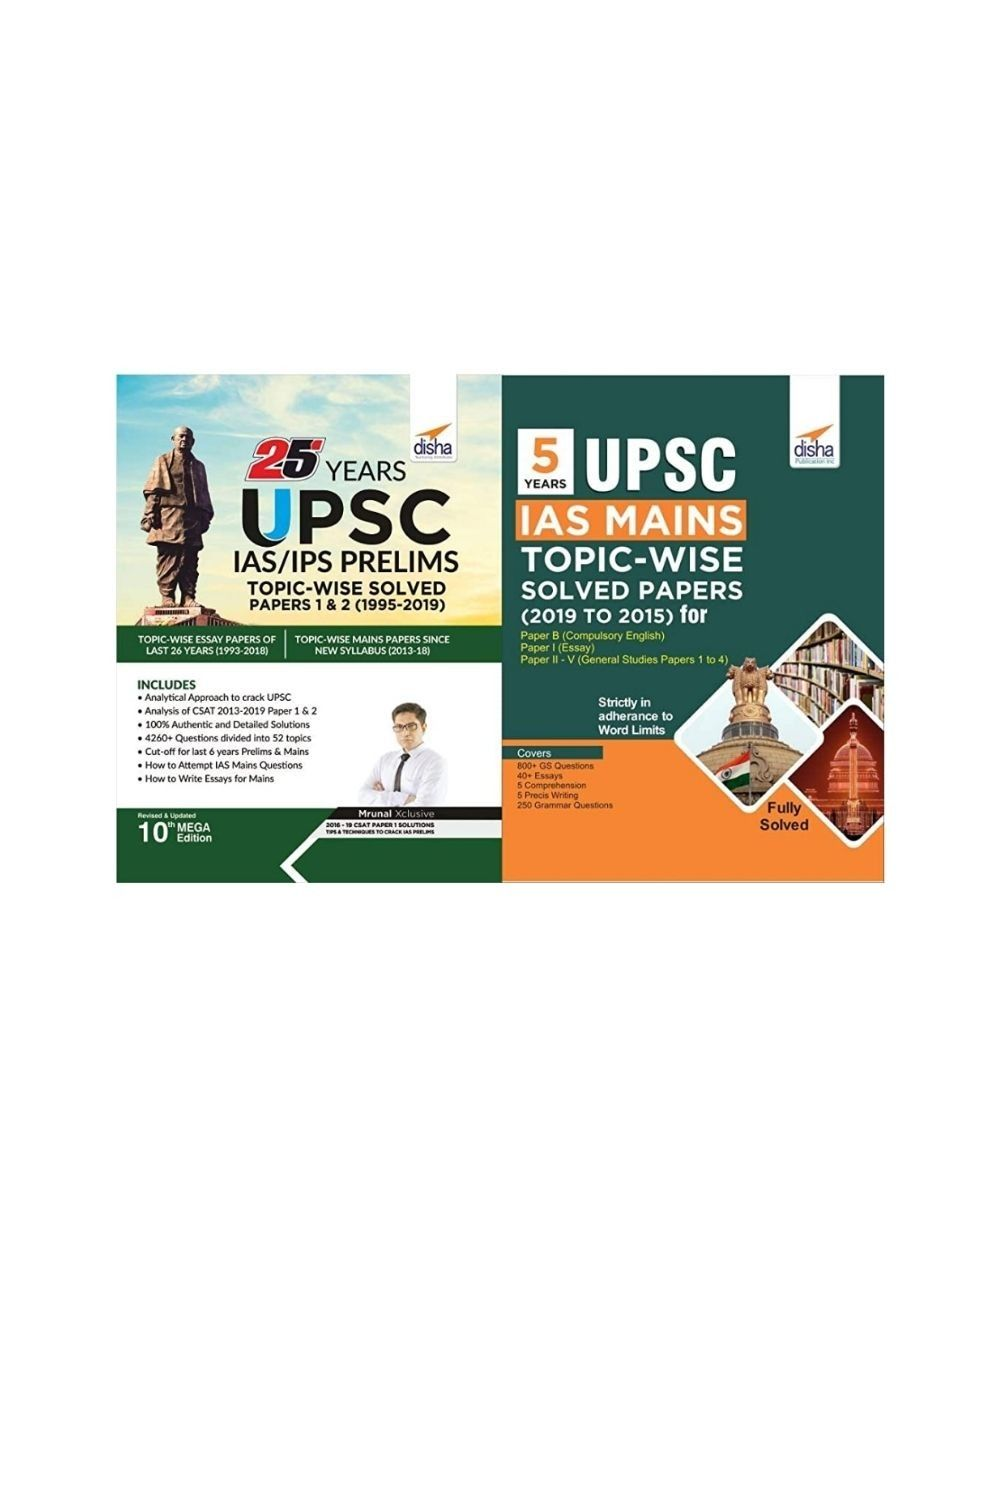 25 Year Upsc Ia Prelim 5 Main Topic Wise Solved Paper Reading App Solving Thi Or That Questions Book For Essay Writing